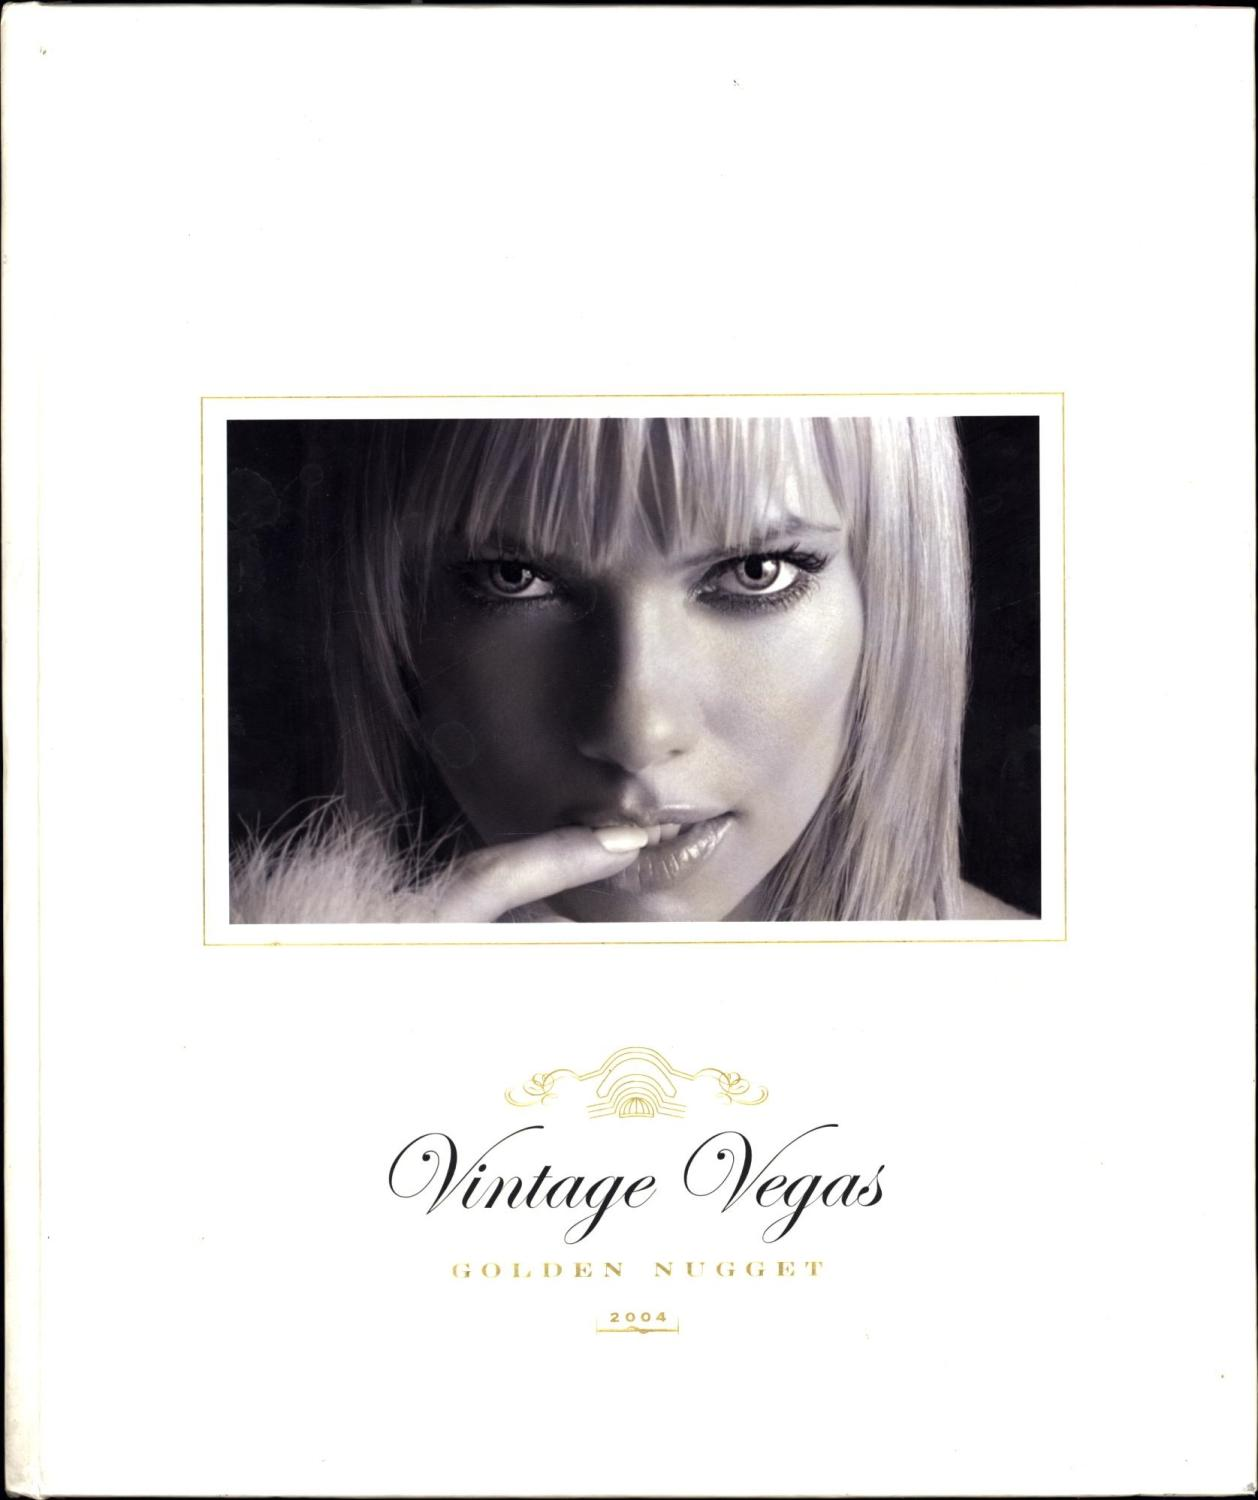 Vintage Vegas / Golden Nugget / 2004 (NUMBERED EDITION, SIGNED BY MODEL JAIME E. PRESSLY) Breitling, Tom Very Good Hardcover Number 204 of a limited edition of 2,500. Inscribed and signed in purple felt-tip to her first photo in the book by actress/model Jaime Pressly. This